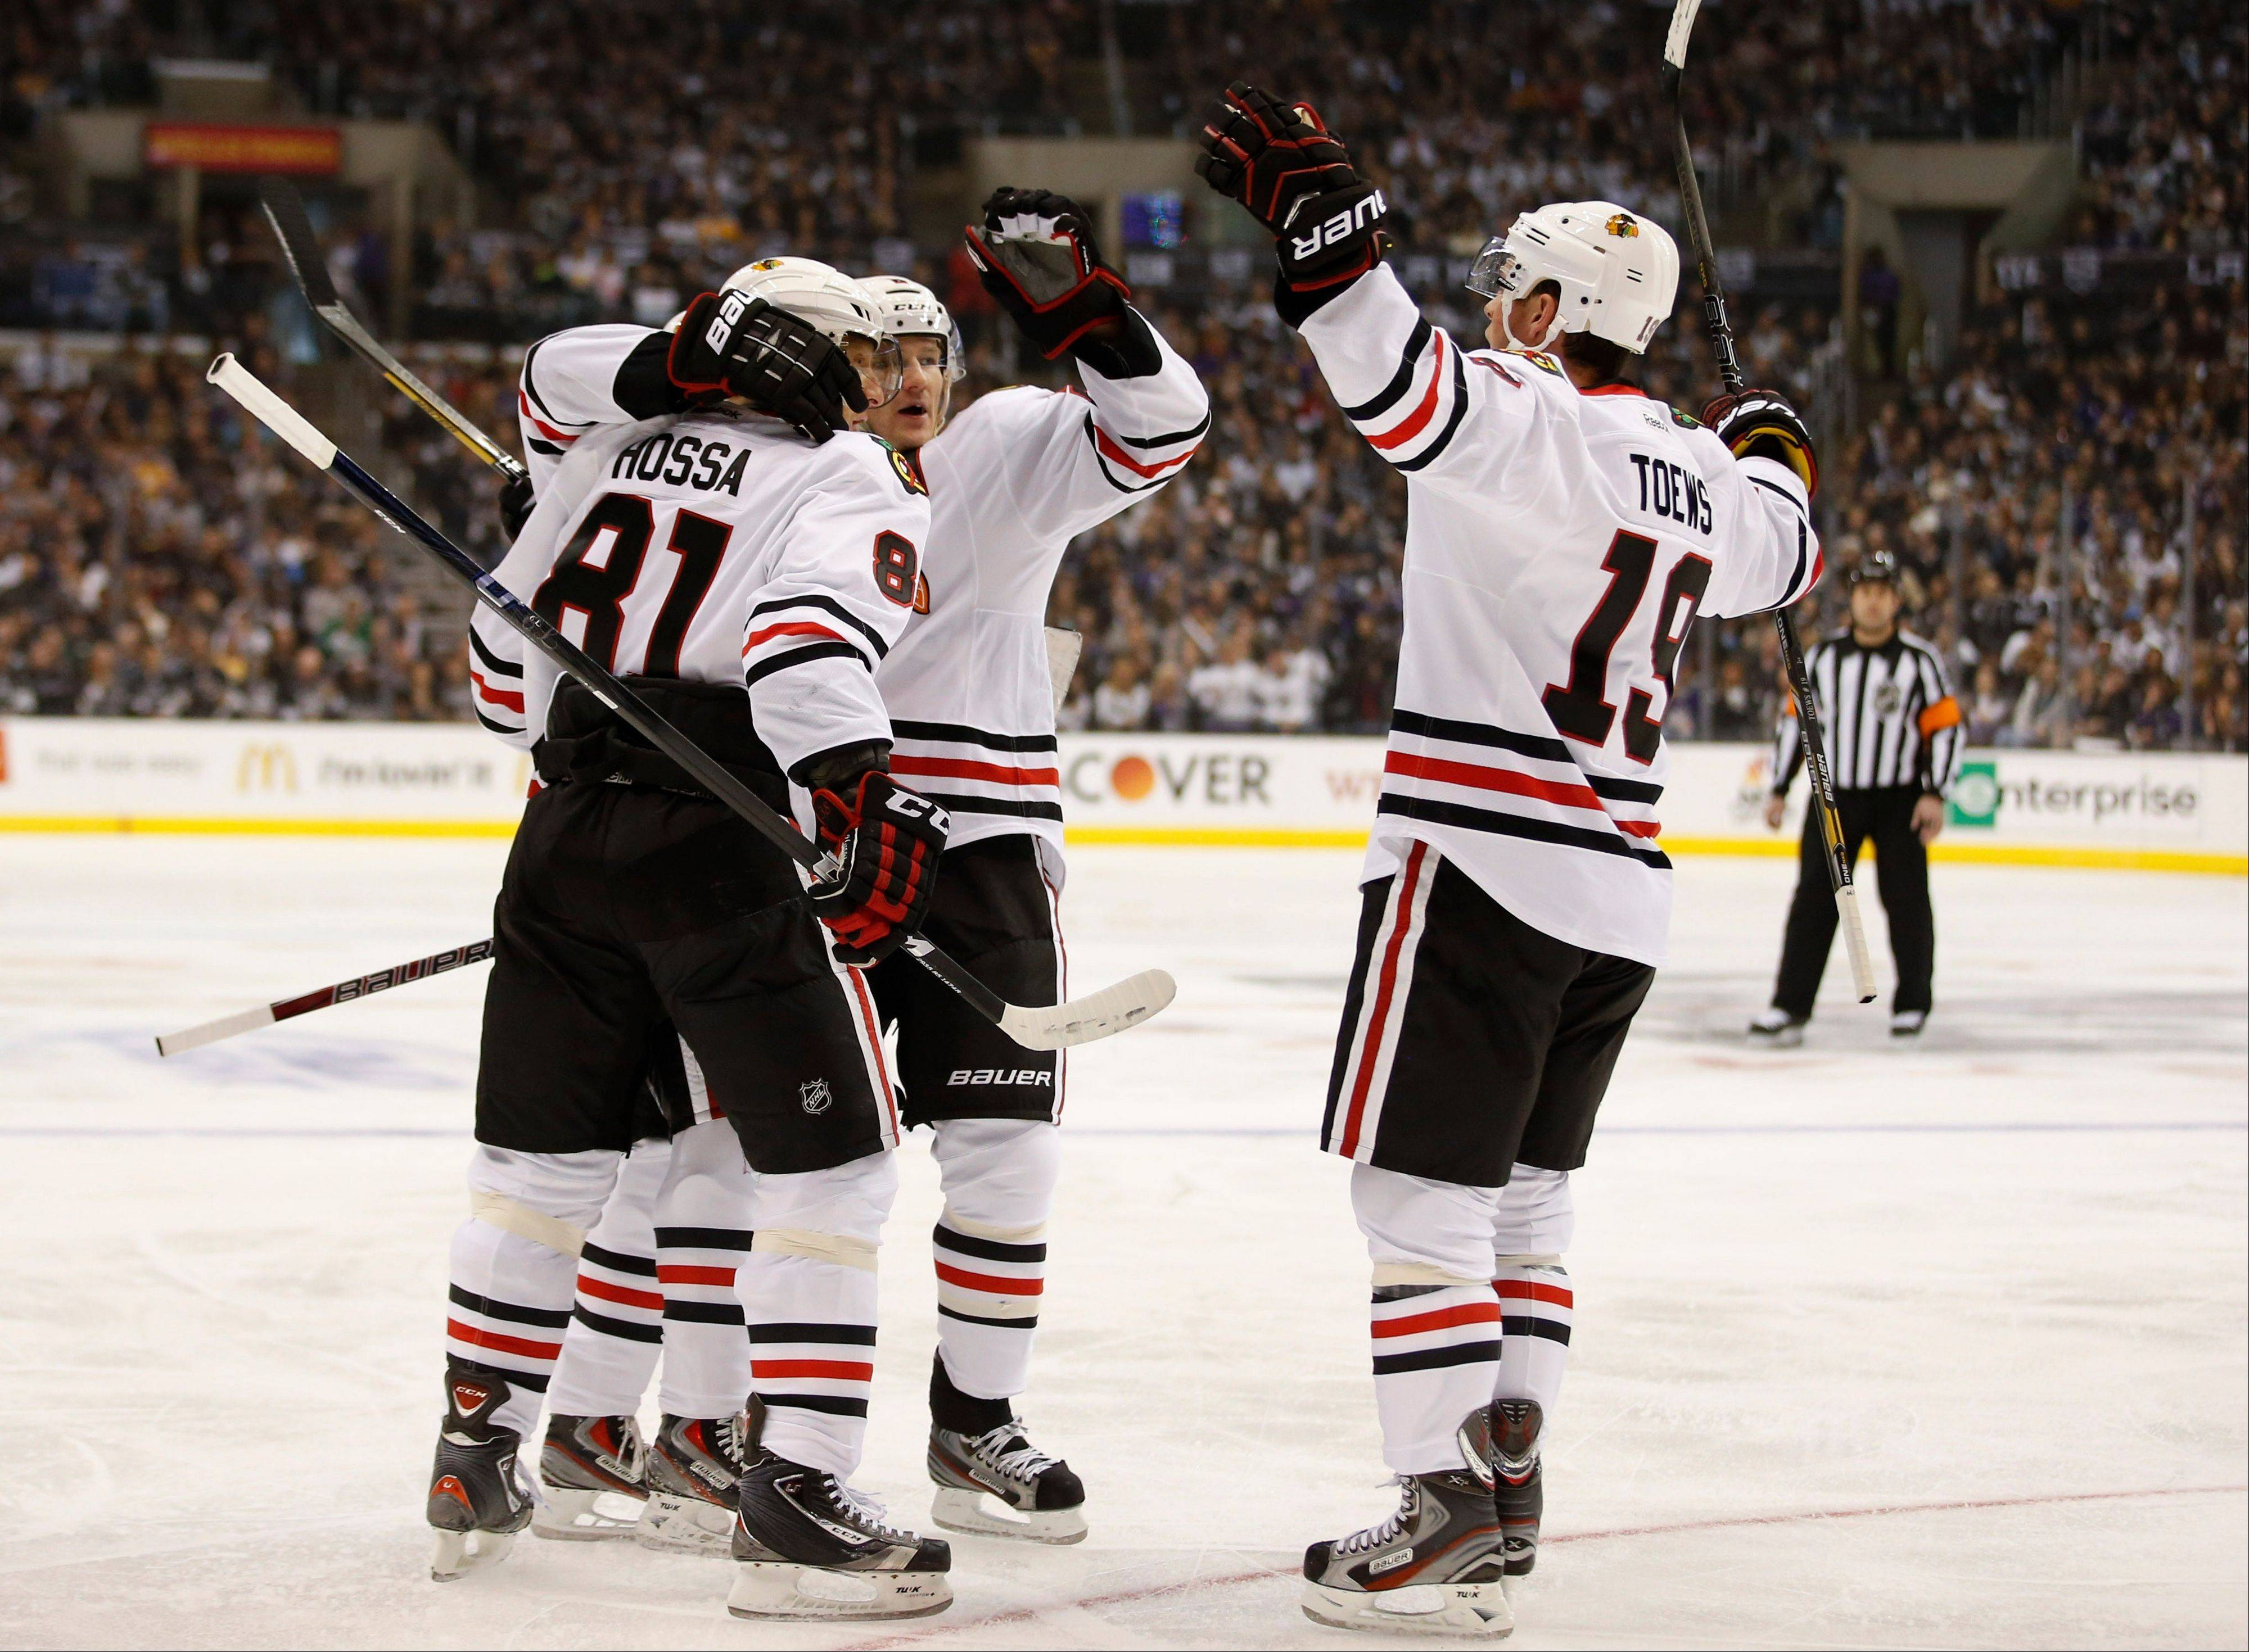 The Blackhawks' Marian Hossa (81), Patrick Kane, Duncan Keith, second from right, and Jonathan Toews celebrate a goal by Kane to open the scoring in the first period Saturday.